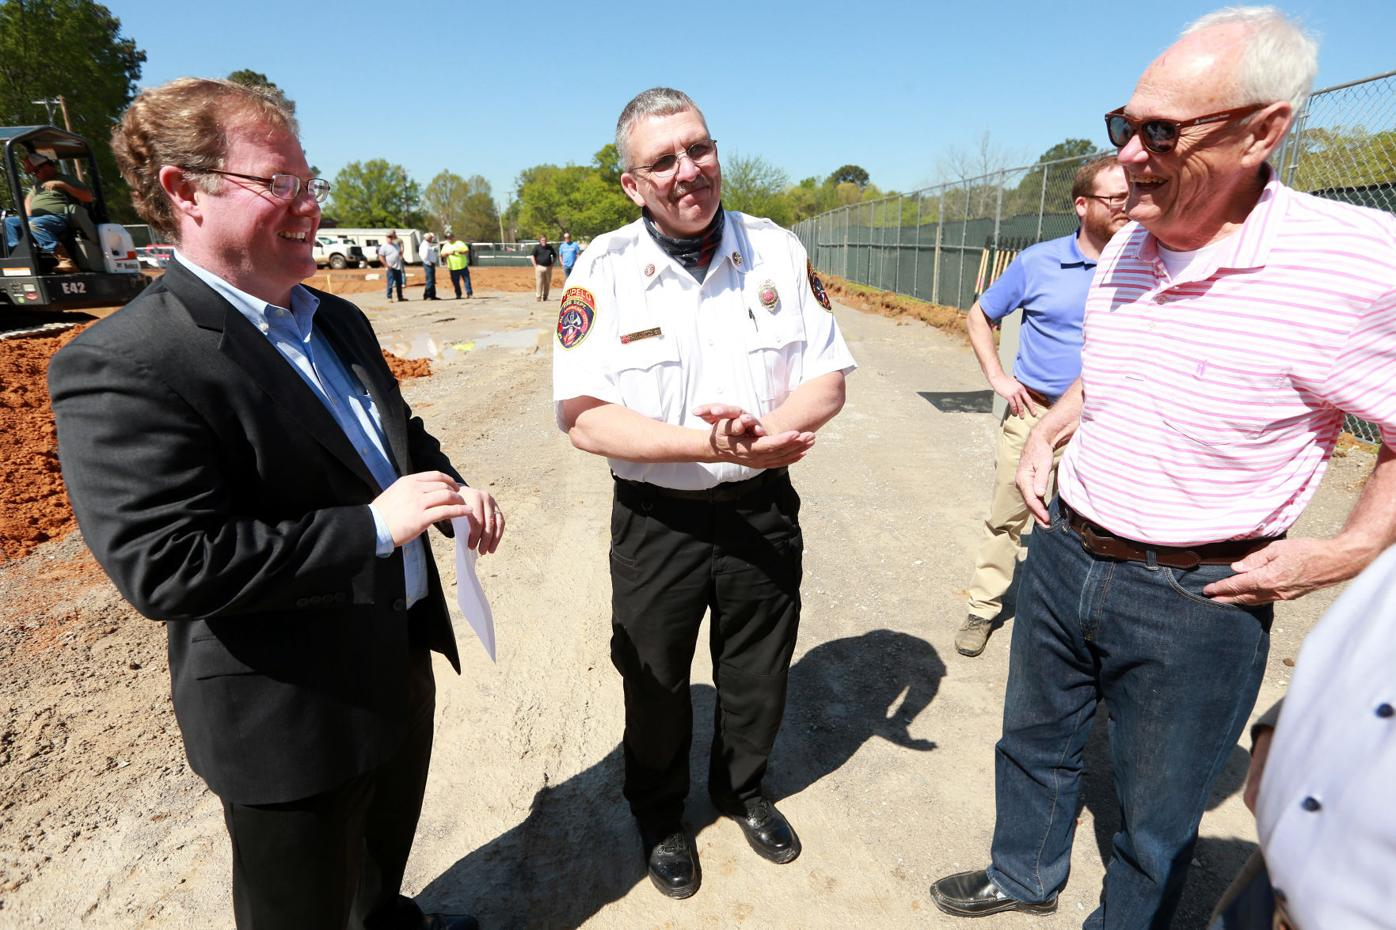 djr-2021-04-09-news-firestation-groundbreaking-arp2